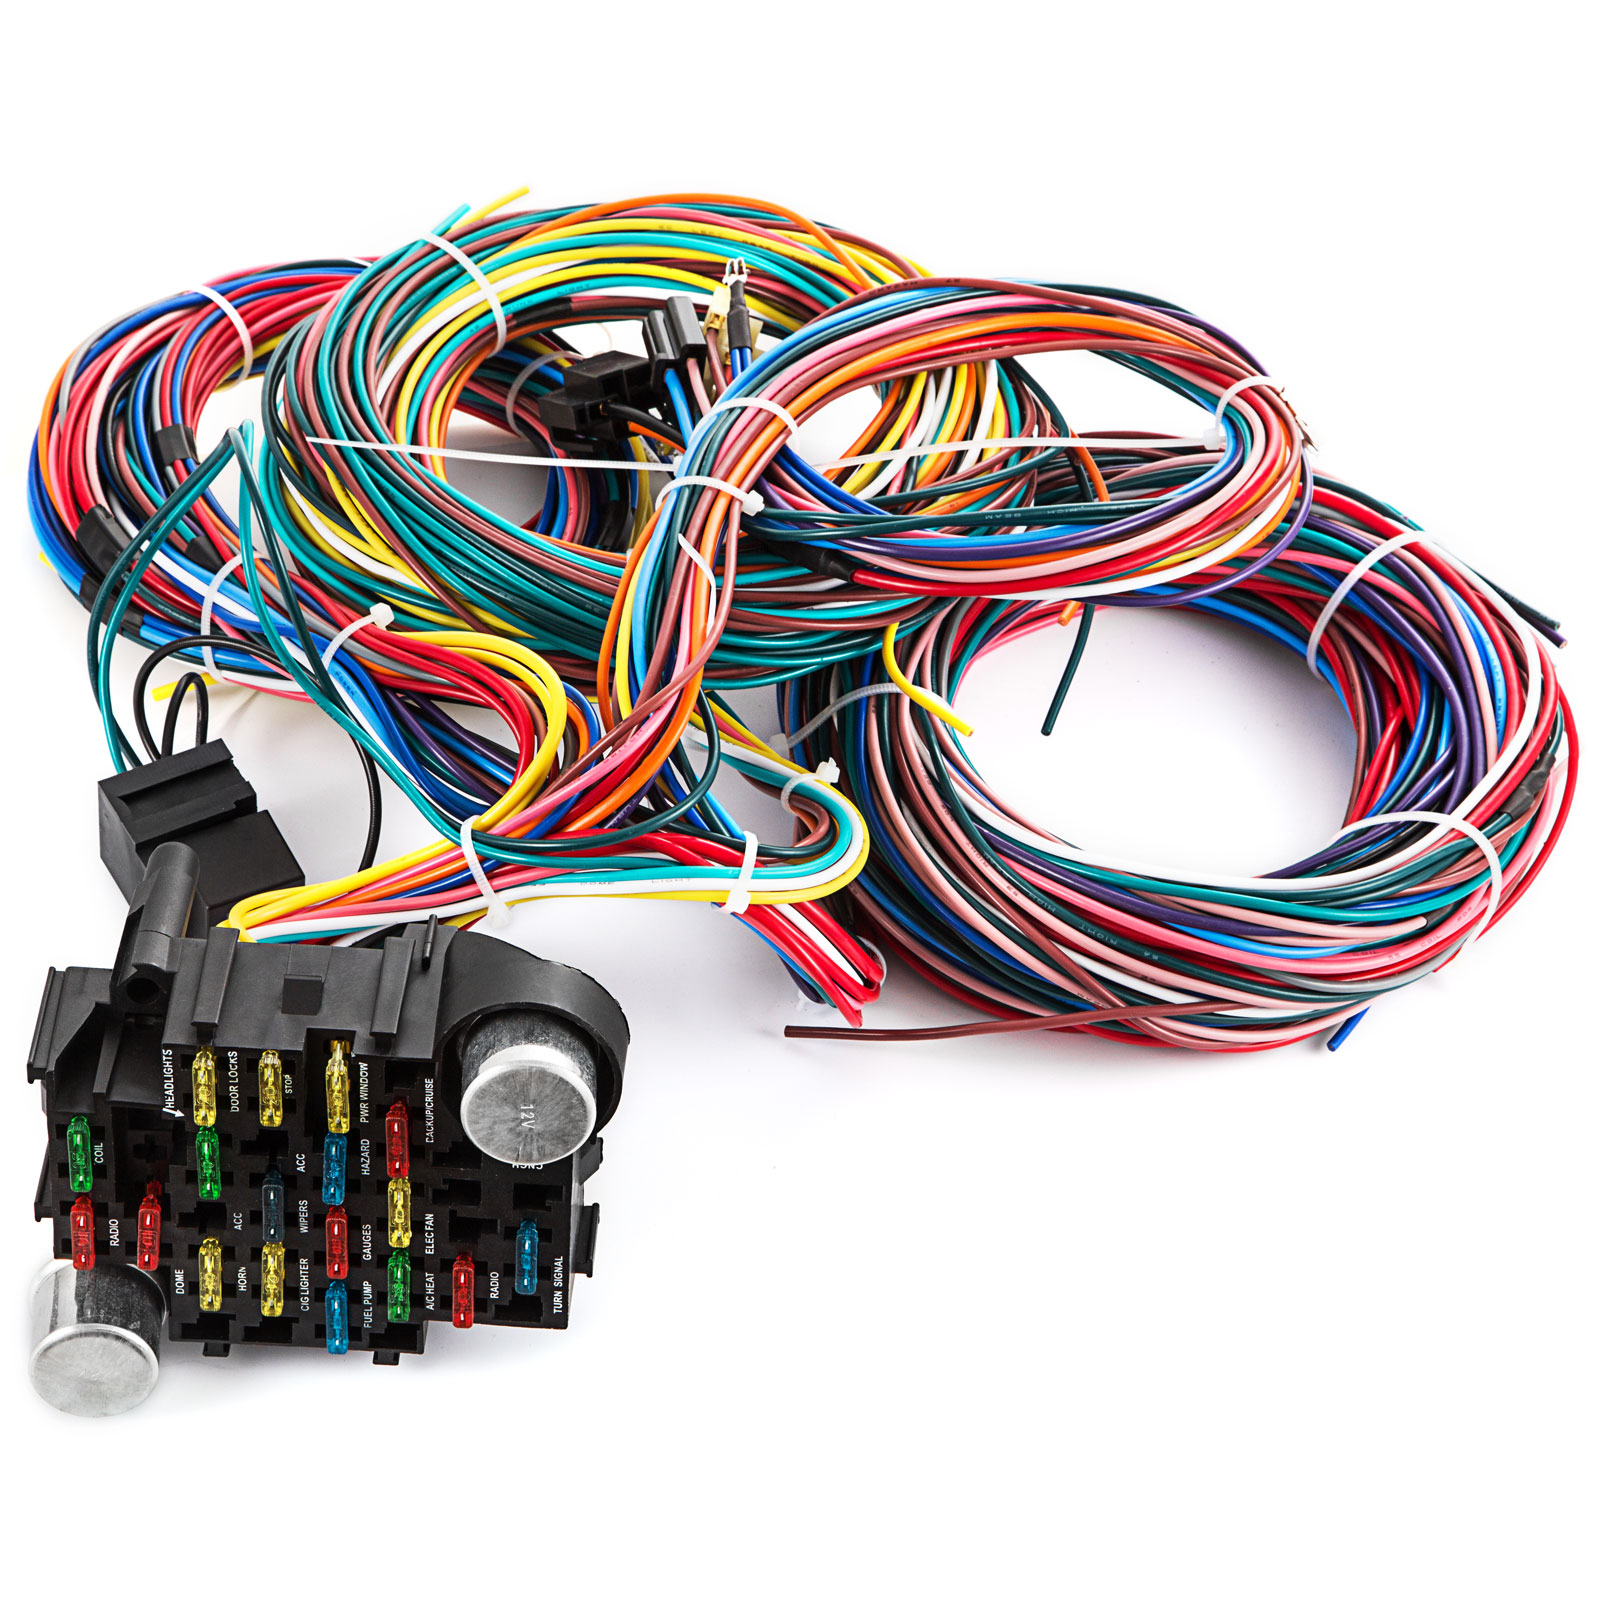 Ez Wiring 21 Circuit Harness Review